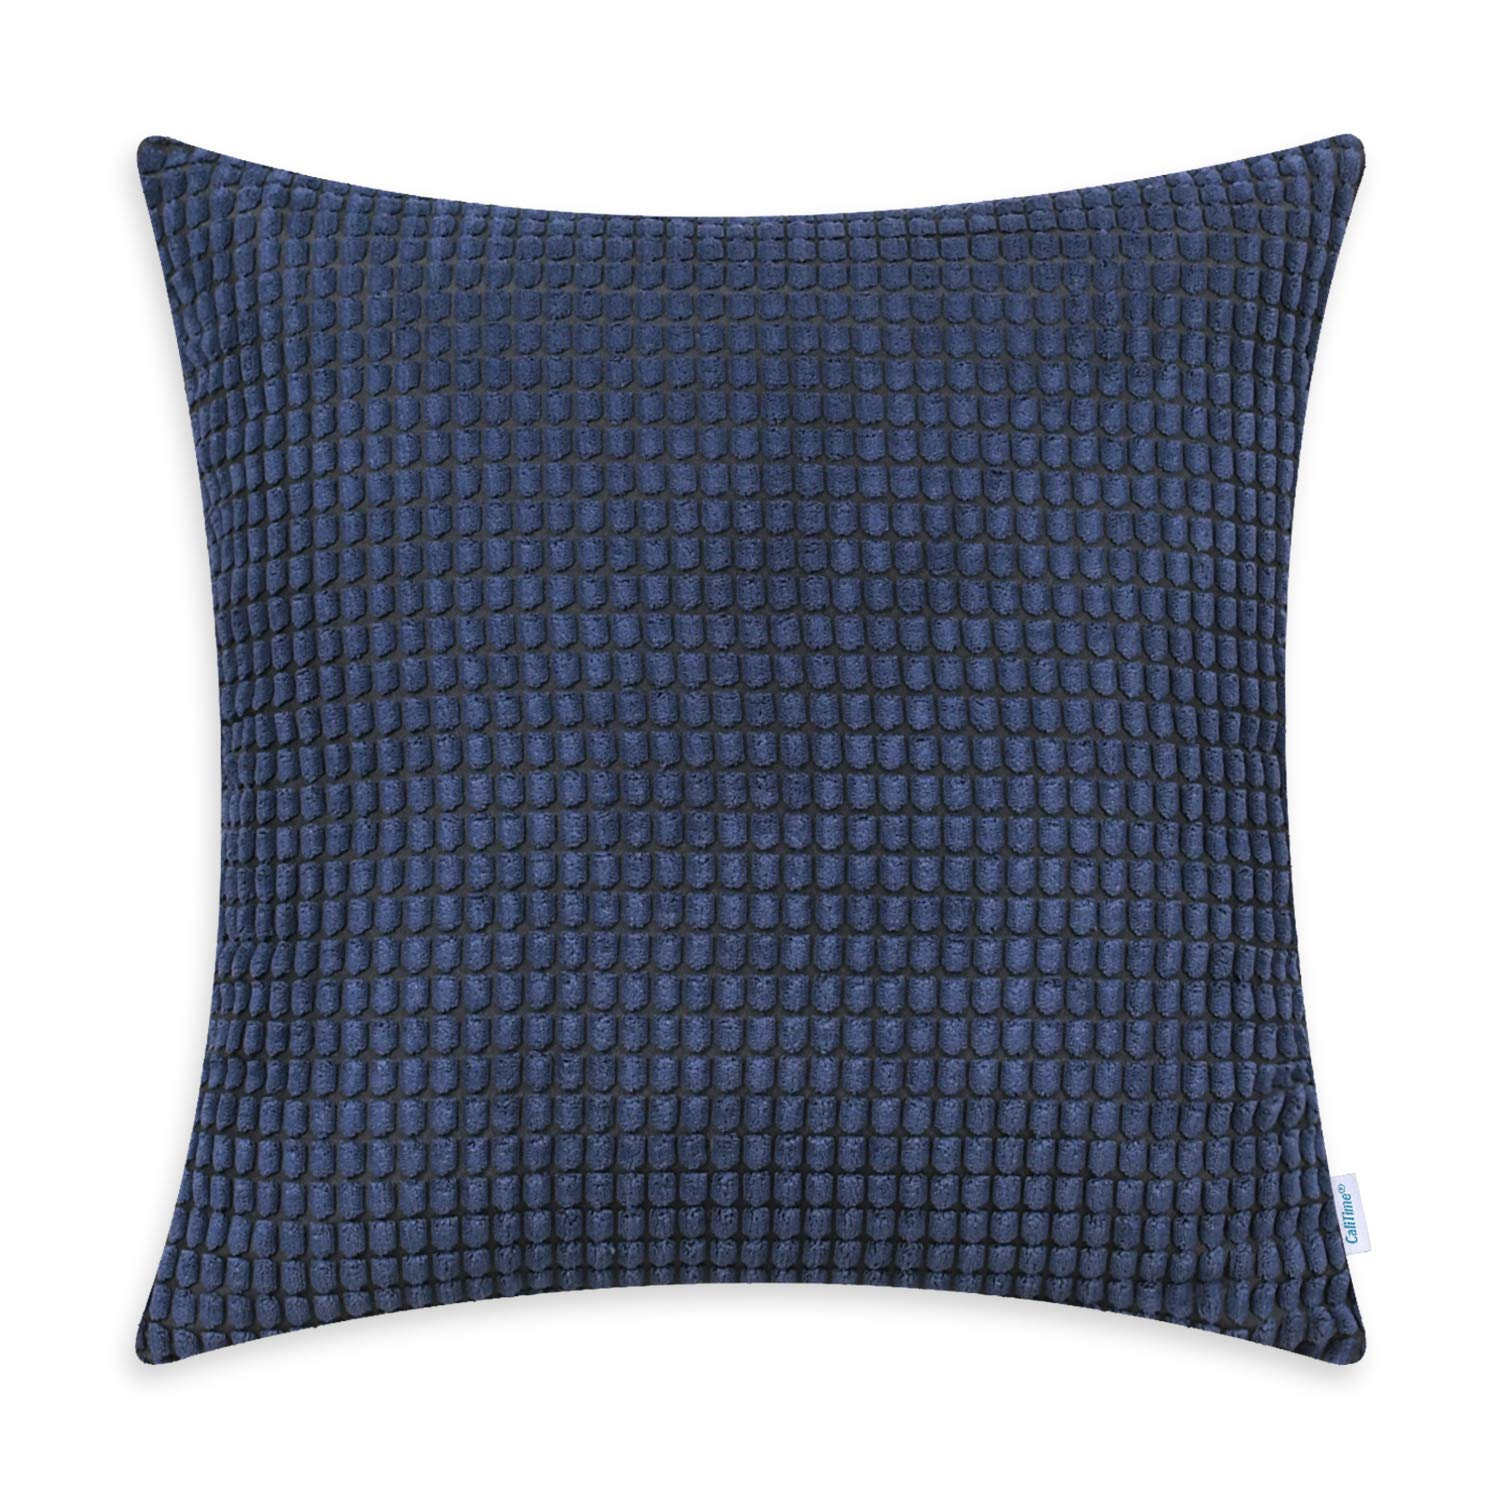 CaliTime Cozy Throw Pillow Cover Case for Couch Sofa Bed Comfortable Supersoft Corduroy Corn Striped Both Sides 18 X 18 Inches Navy Blue